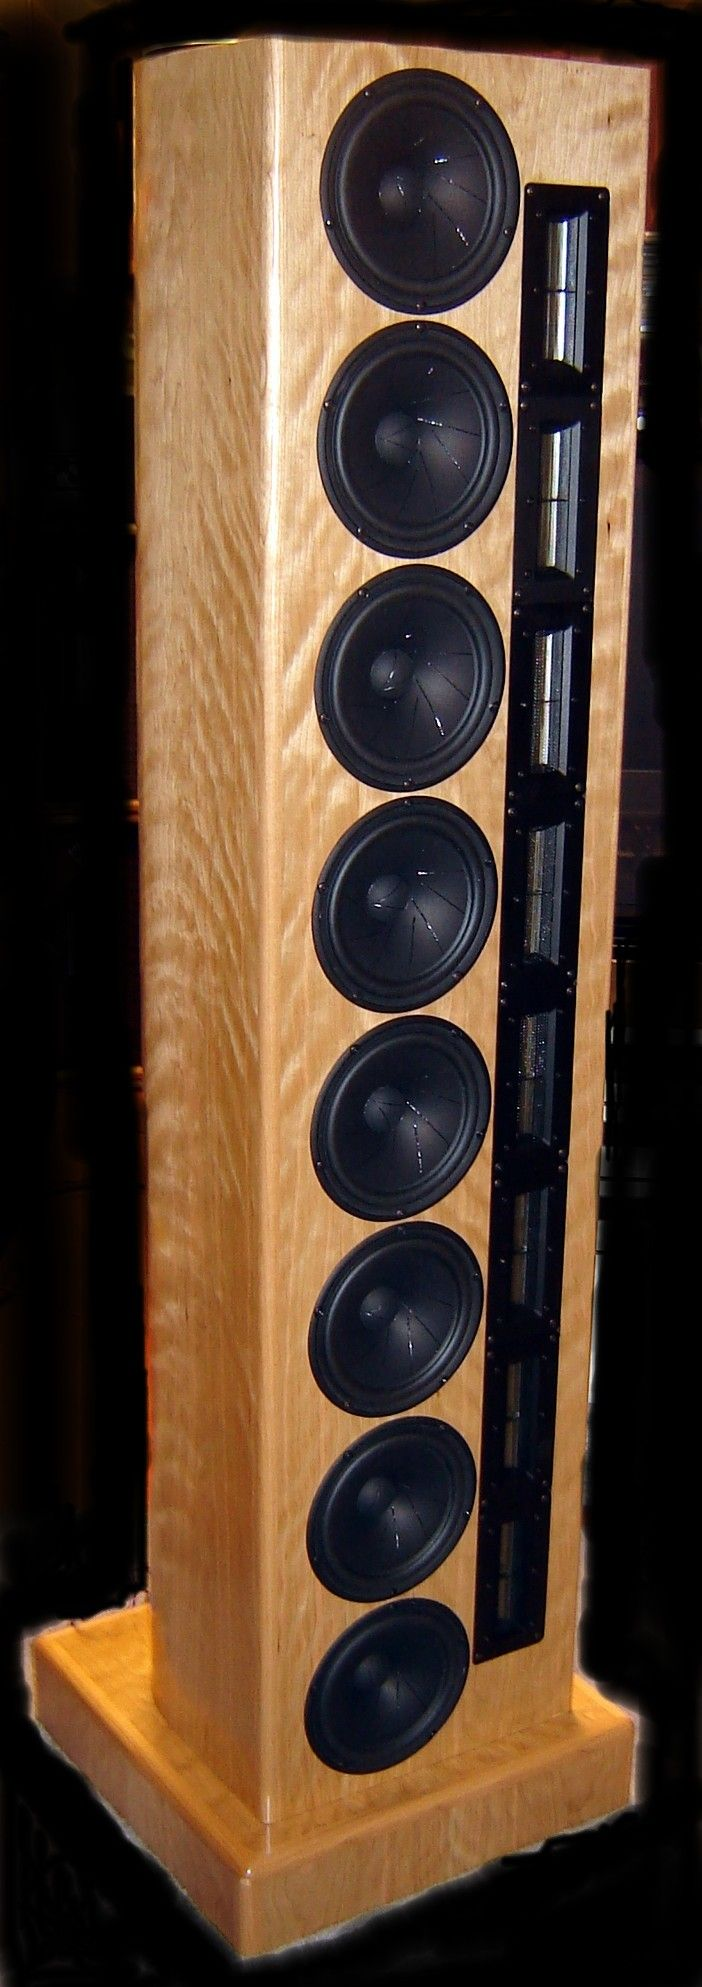 Skema box speaker woofer search results woodworking project ideas - Let Us Help You With Our Years Of Experience In Line Array Design